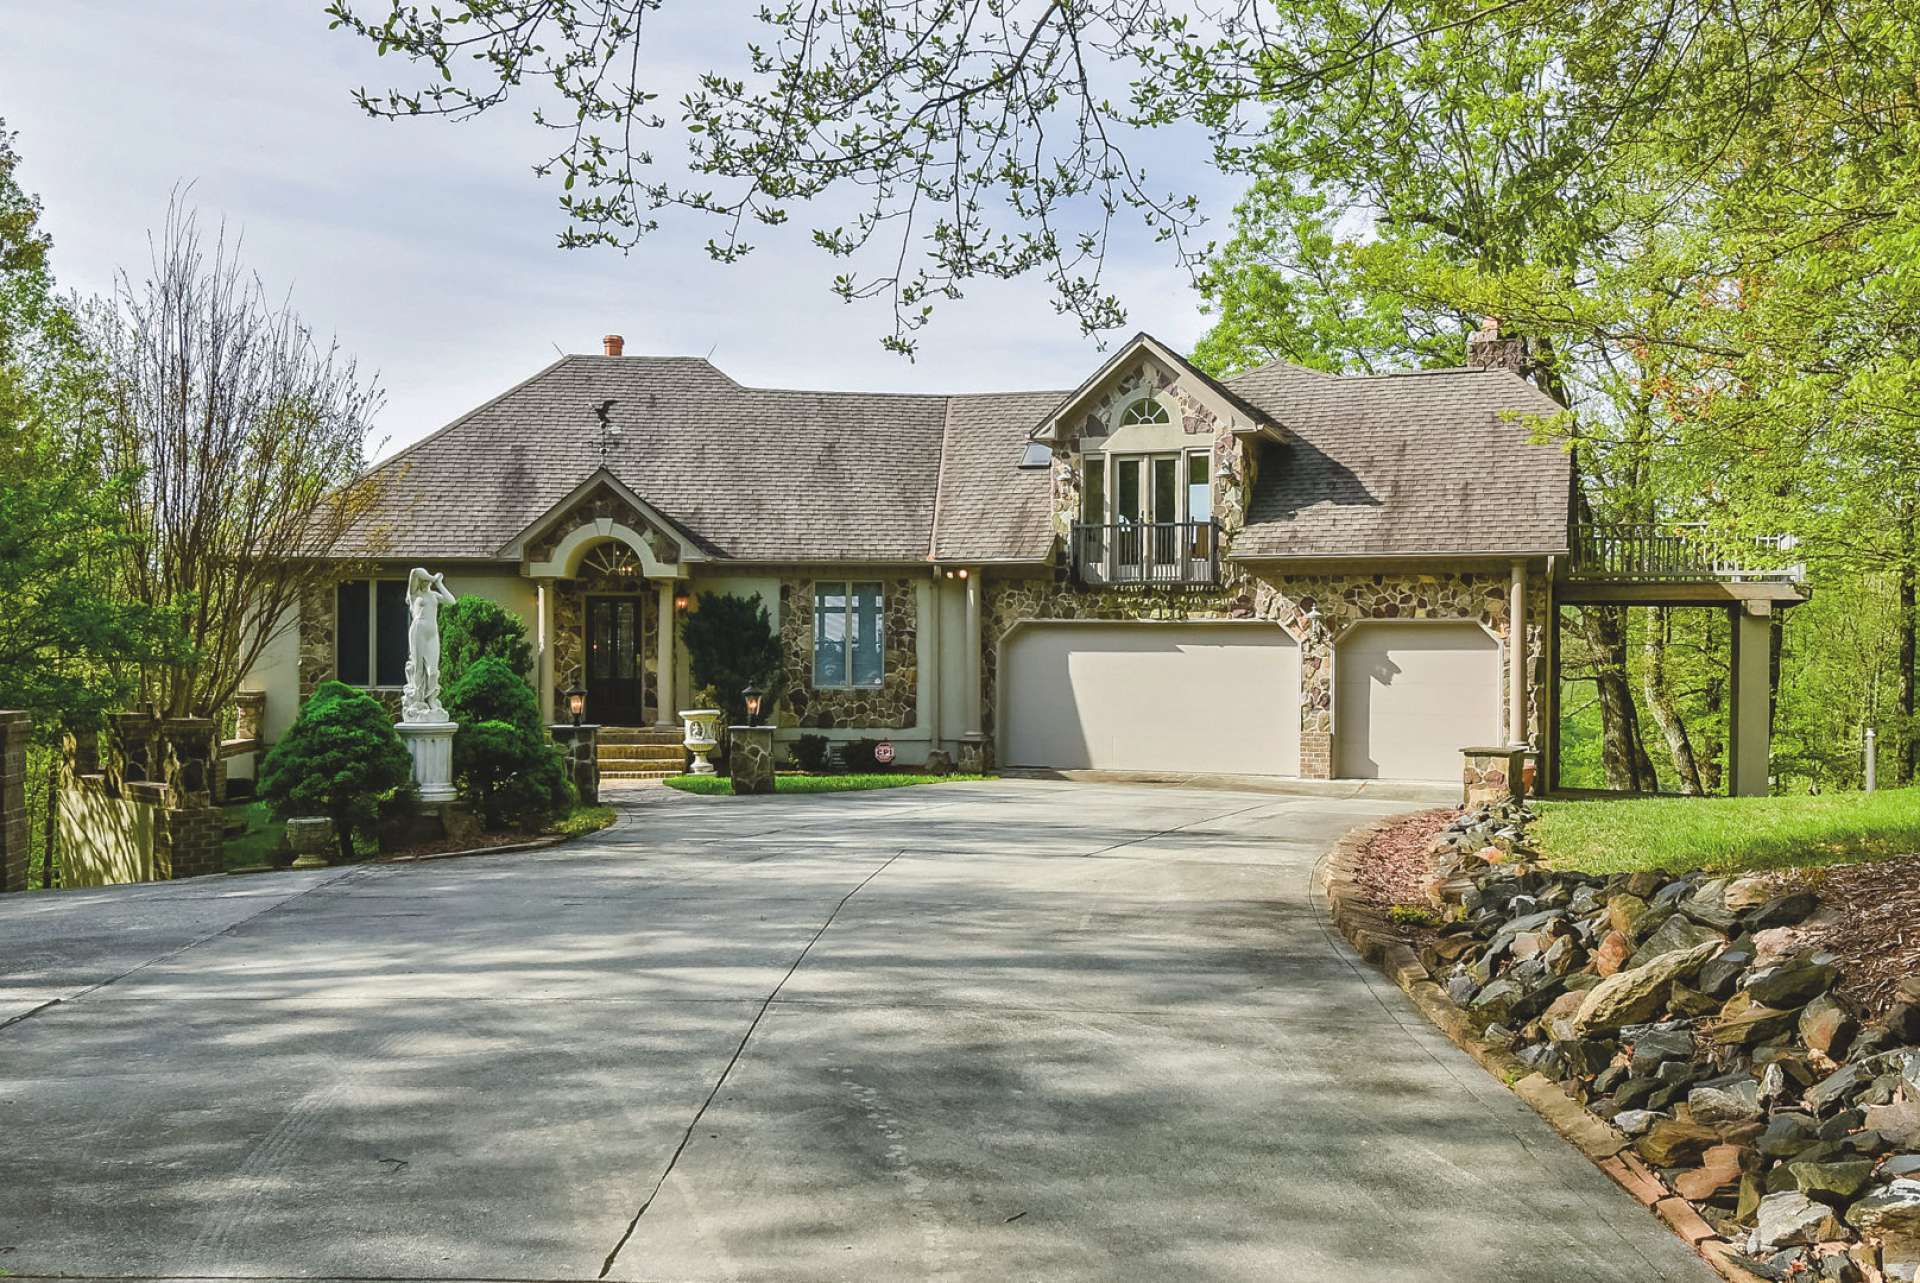 WELCOME HOME! This luxurious mountain estate is perfect for your private mountain retreat or primary residence. The location is convenient to many NC High Country destinations such as the New River, Mount Jefferson State Park, and the amenities of West Jefferson or the Boone area. S168